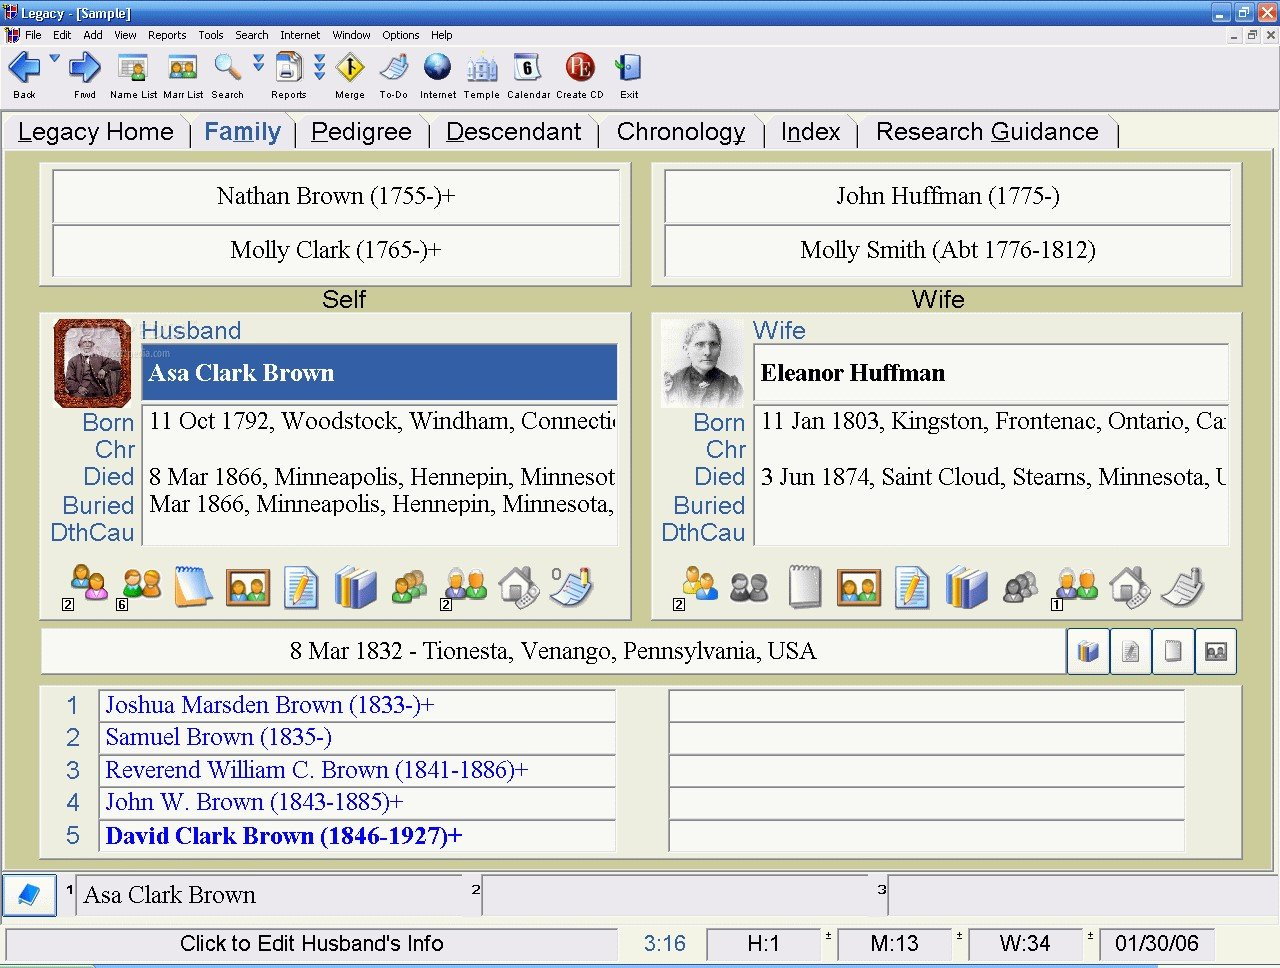 TreeDraw is a genealogy software package for producing high quality genealogy charts. Family trees are imported into the software from